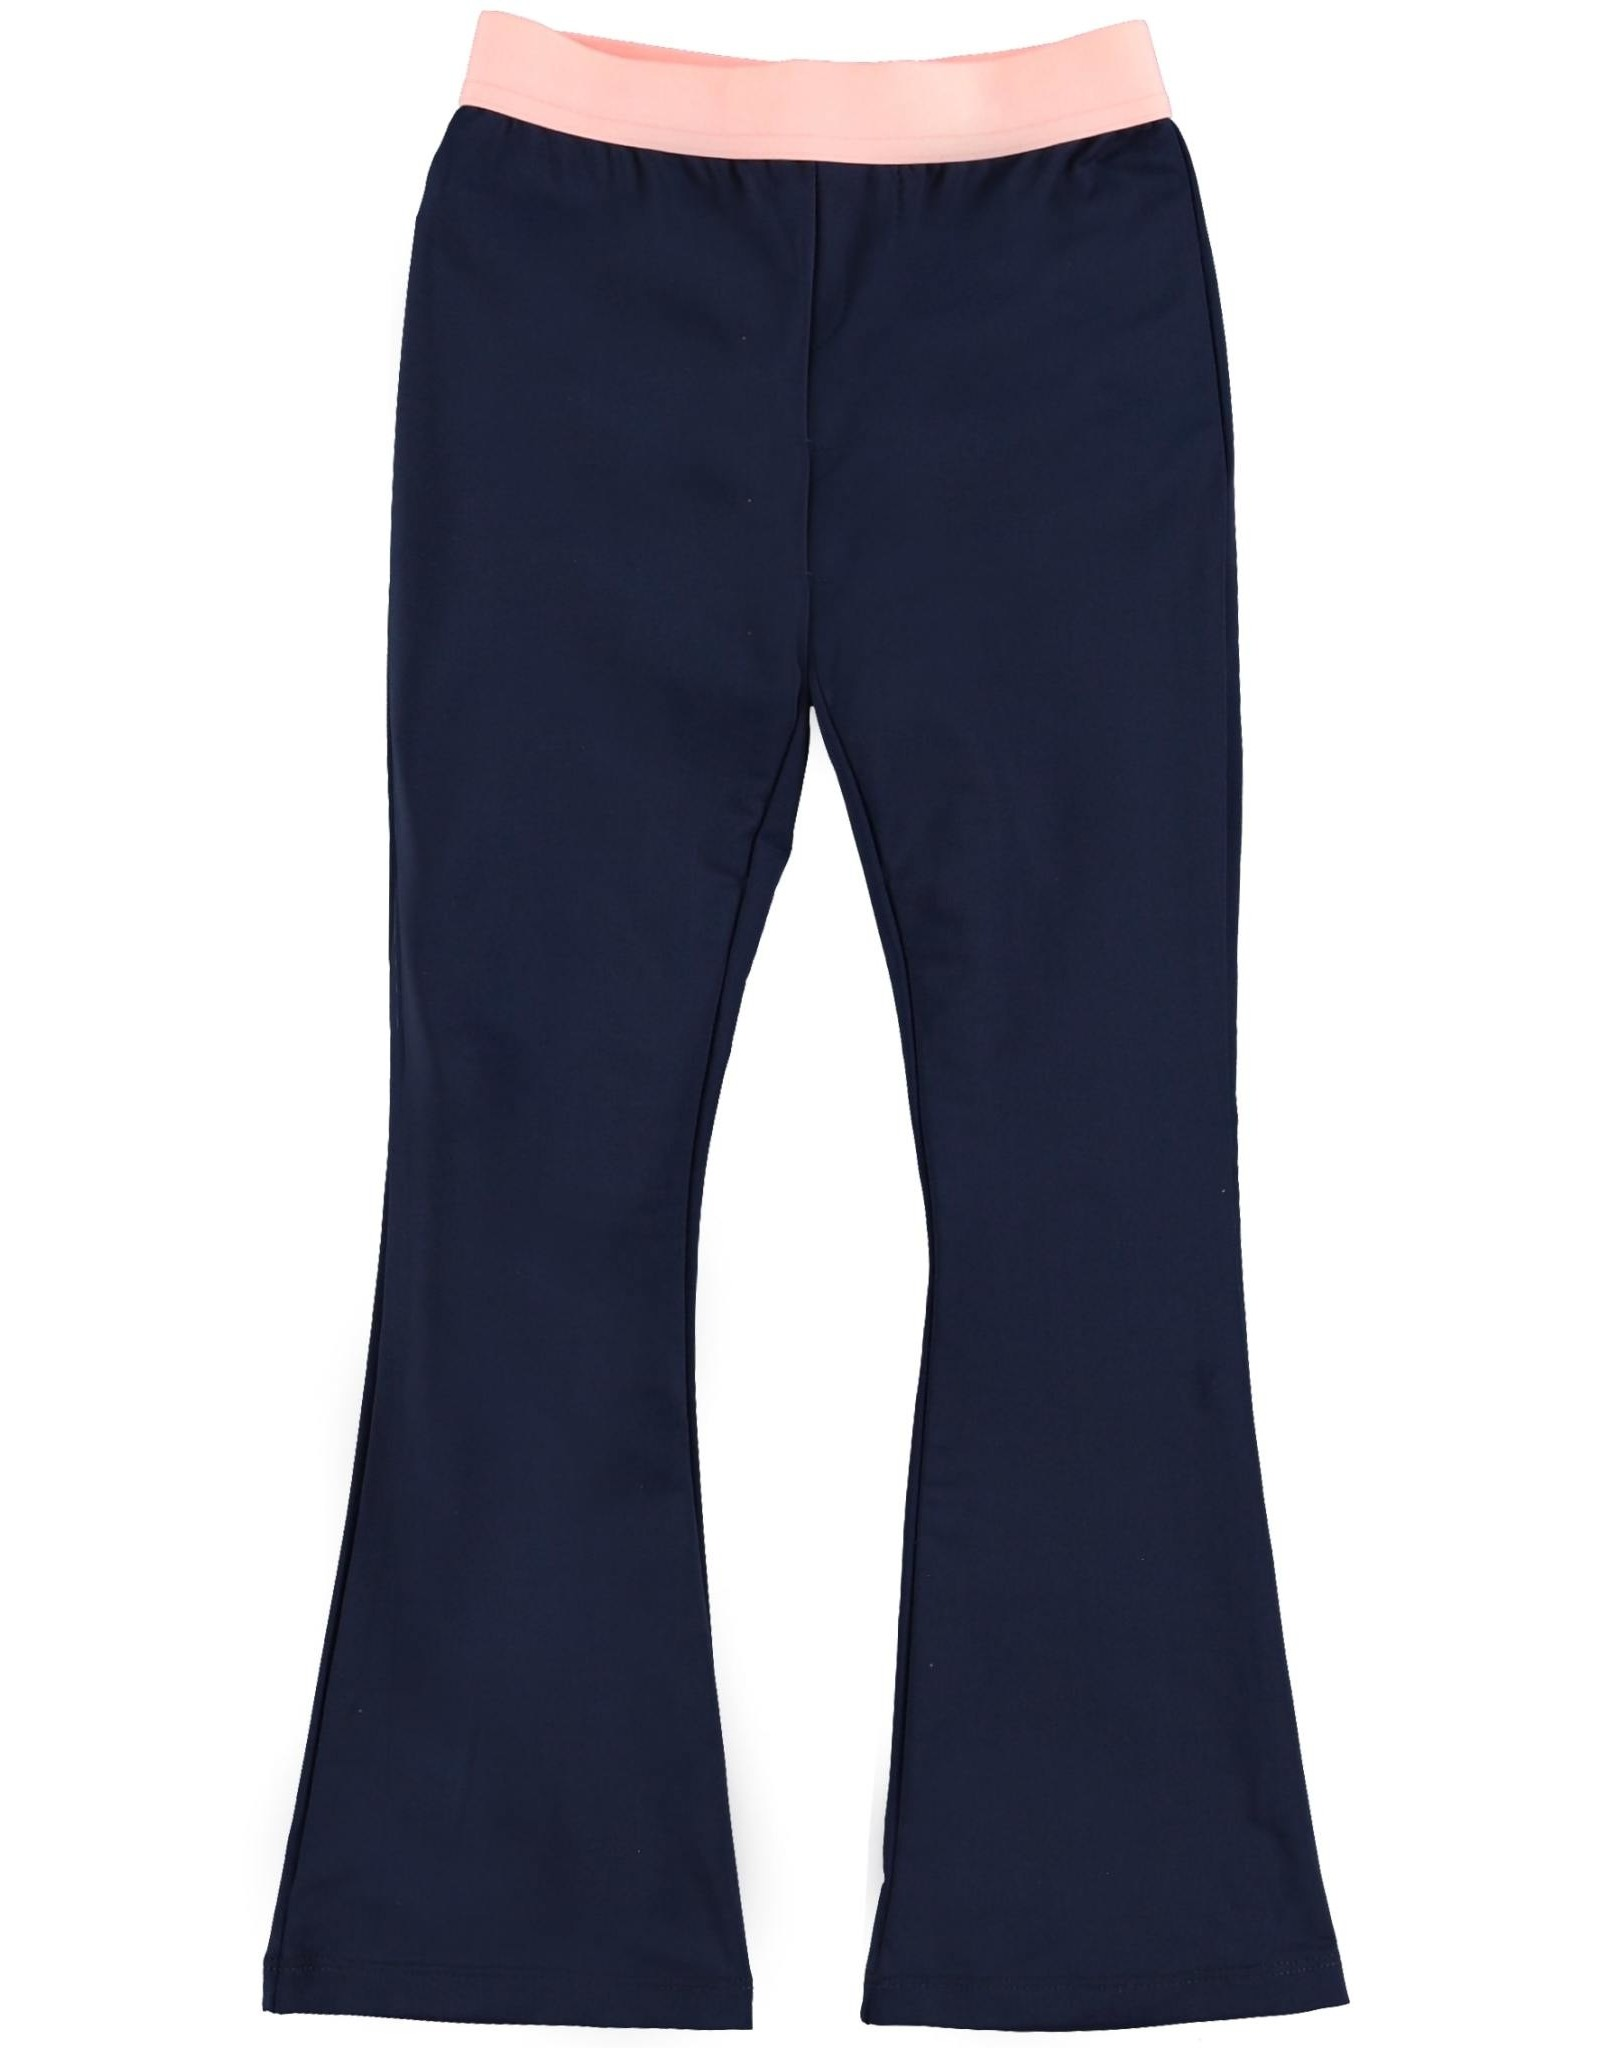 O'Chill O'Chill meiden travelstof flaired pants Macy Navy